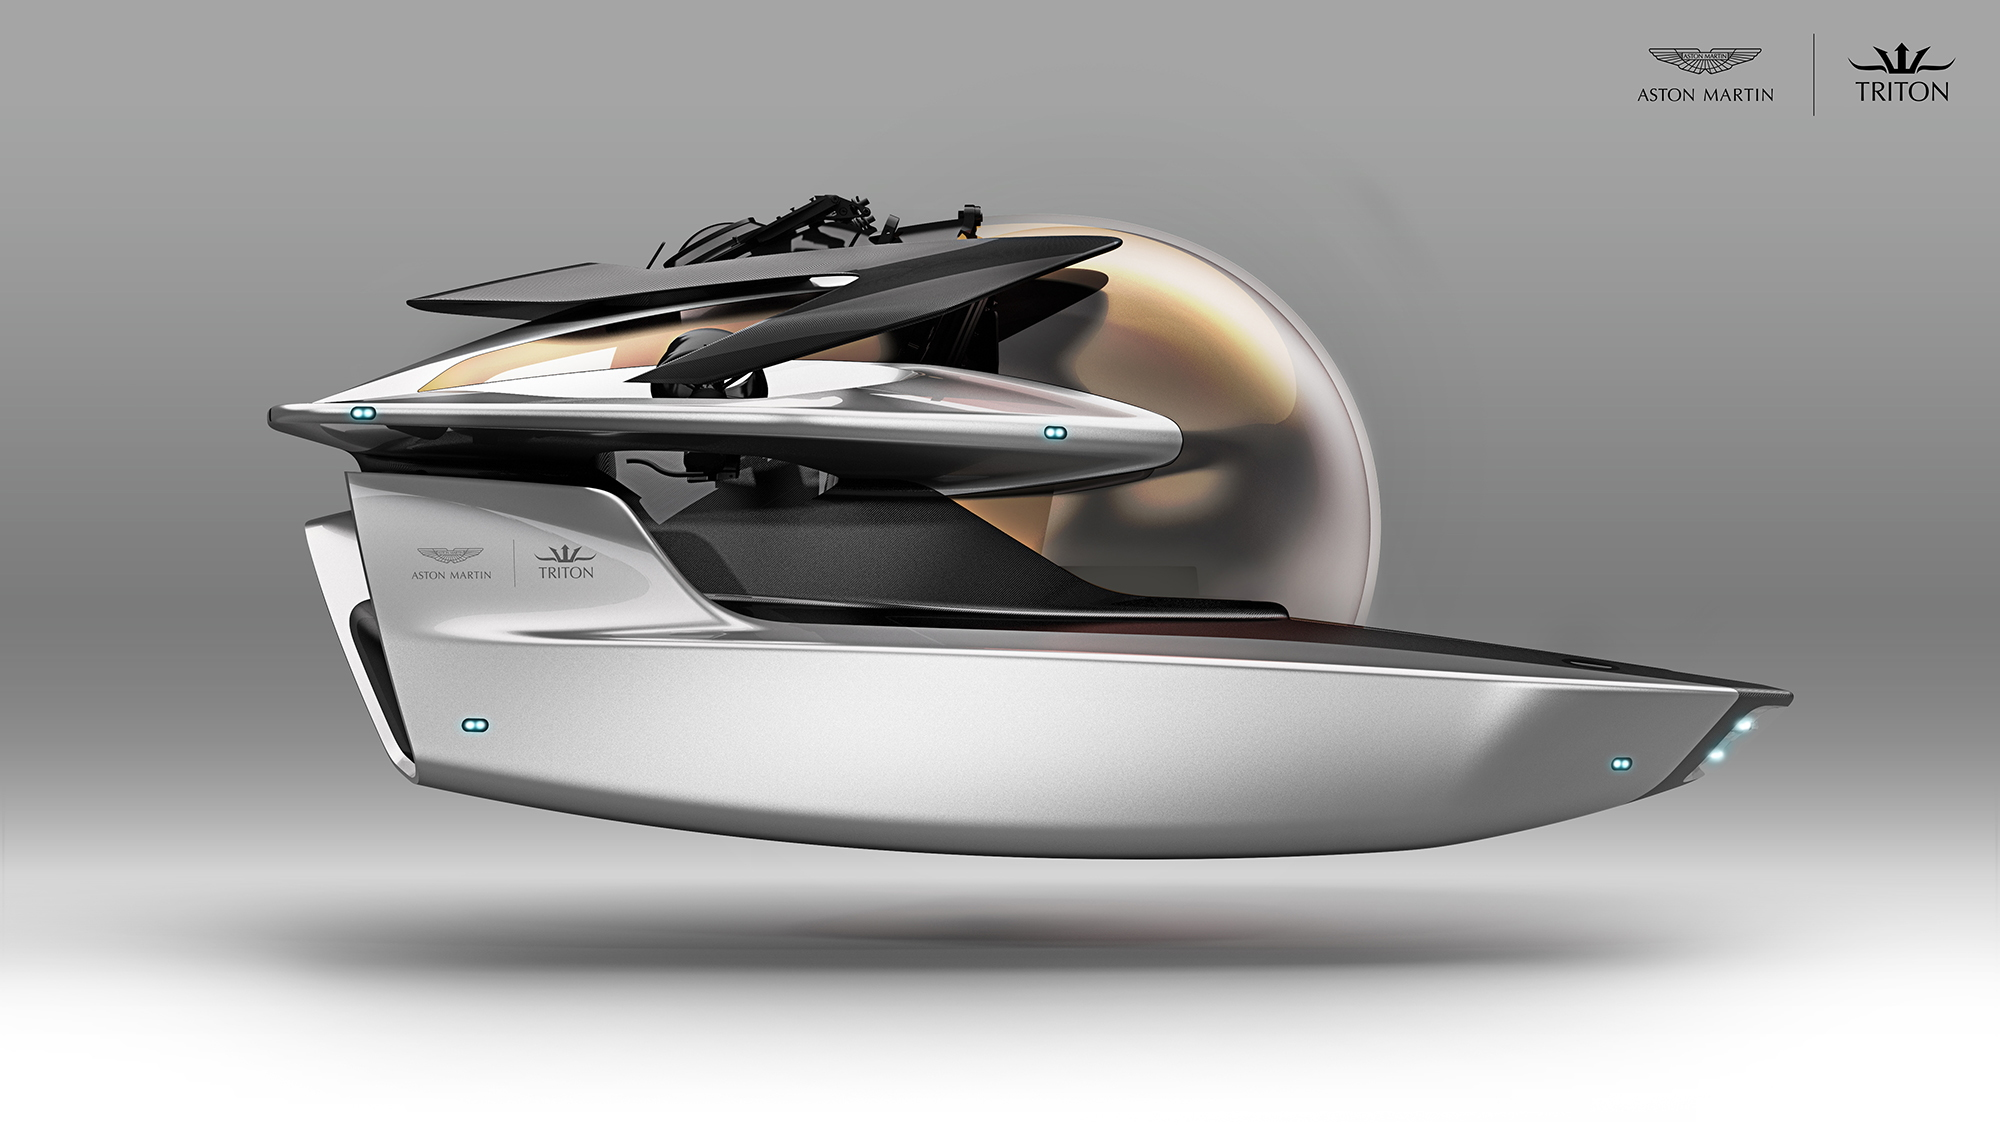 Project Neptune created by Triton Submarines and Aston Martin